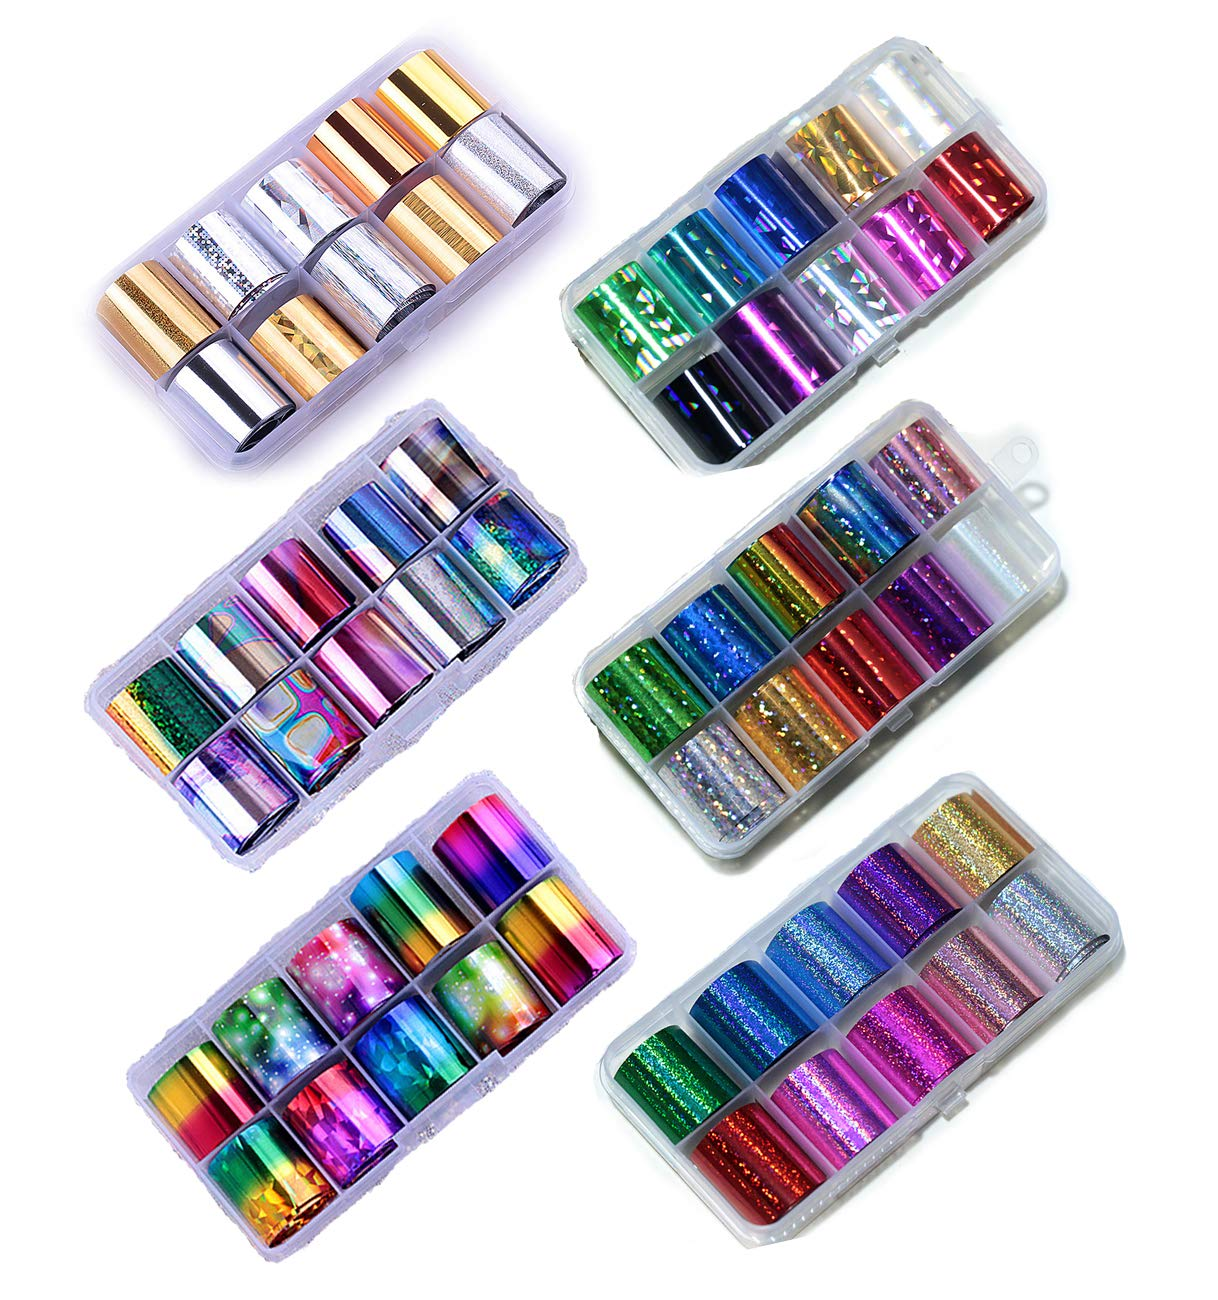 60 Rolls Nail Art Transfer Foil Wraps Decals - DIY Decoration, Acrylic Holographic Solid Color by HugeHug